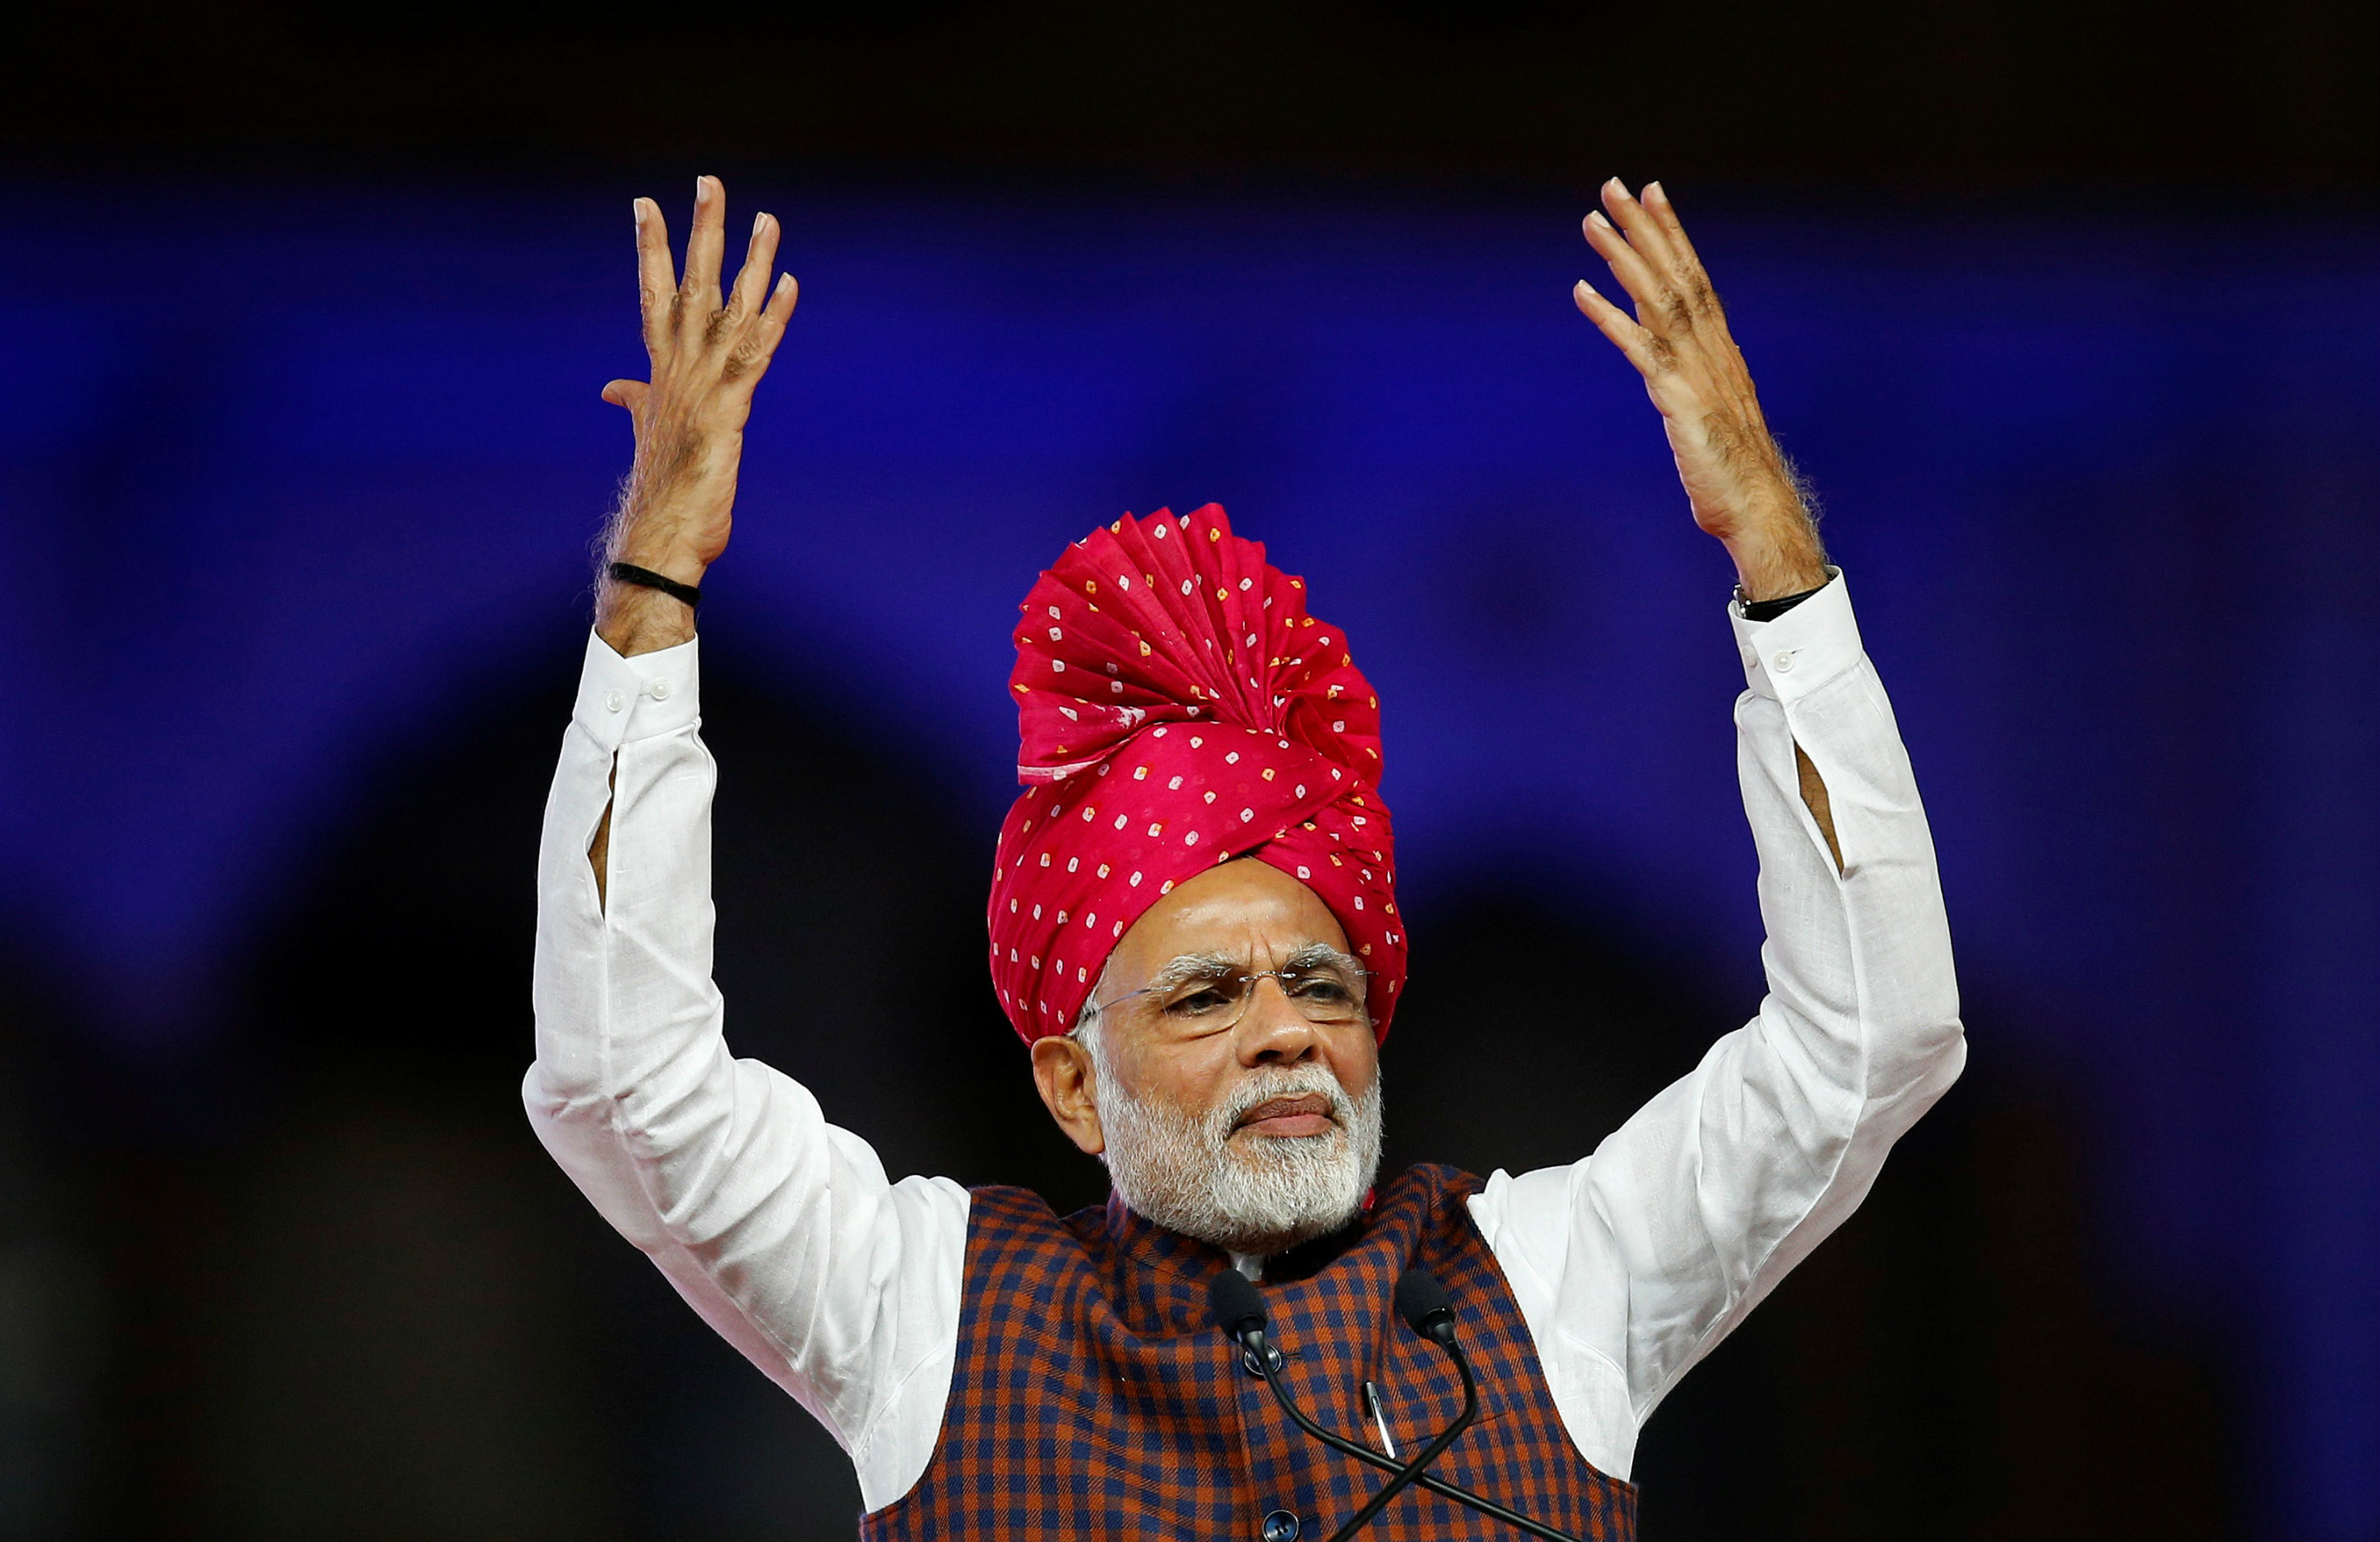 Modi's economic report card before India's 2019 elections